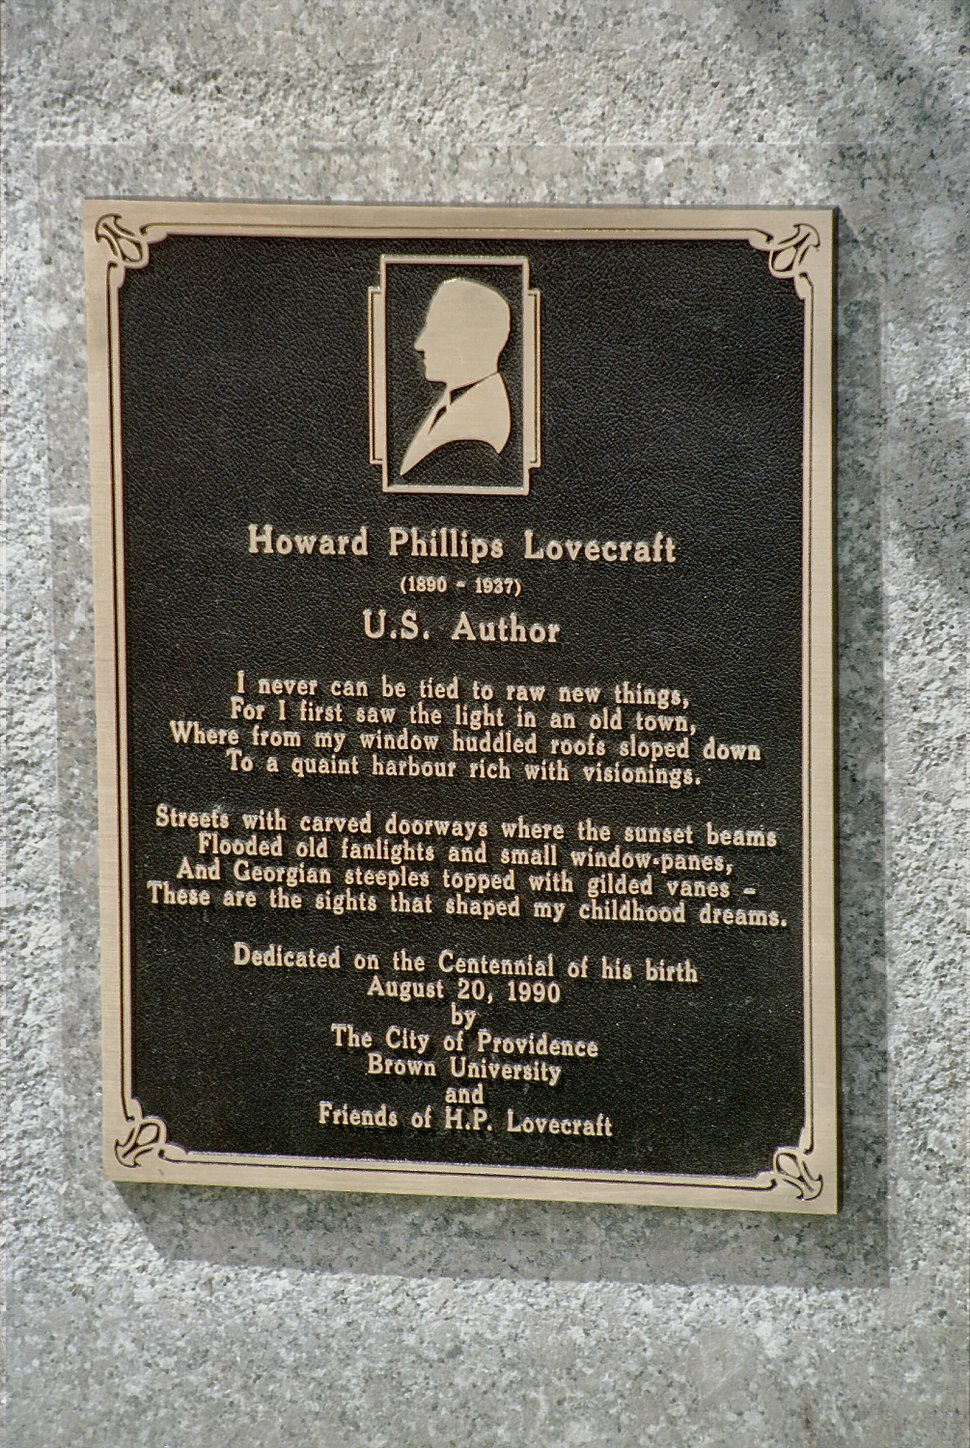 H. P. Lovecraft Memorial Plaque at 22 Prospect Street